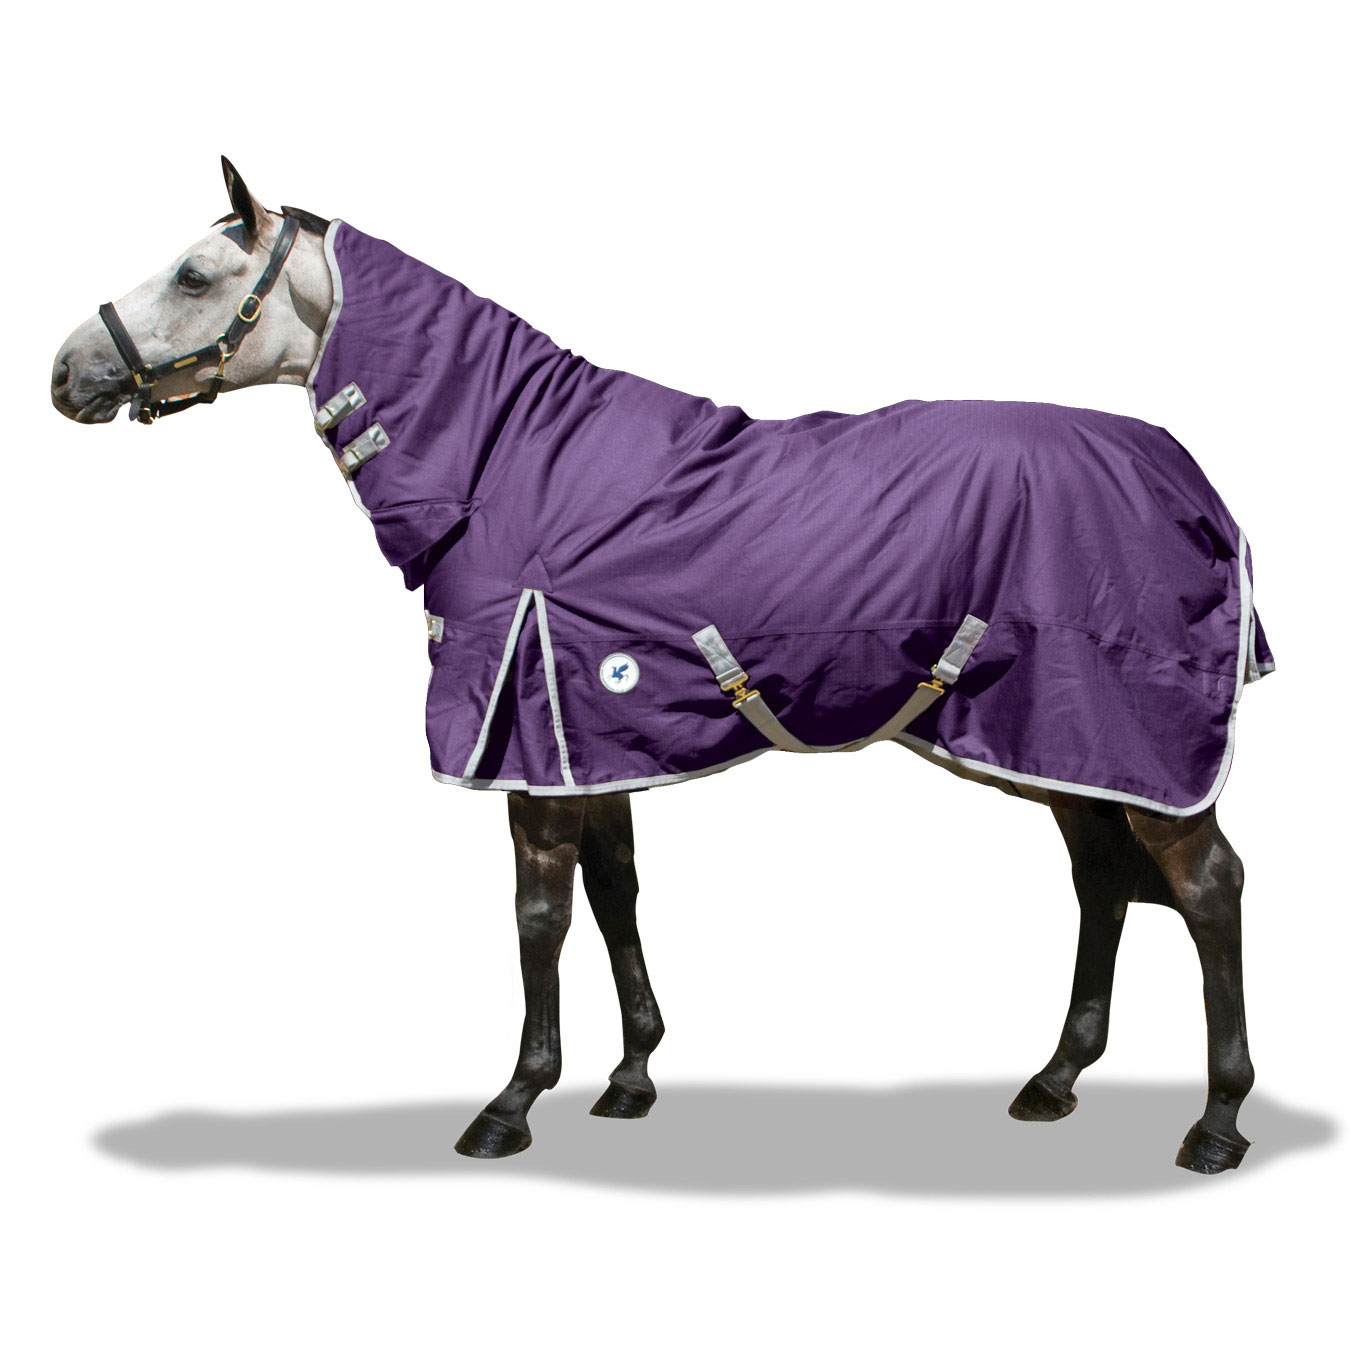 ltd edition rug Derby House - Check this out for a MID WEEK TREAT from Derby House